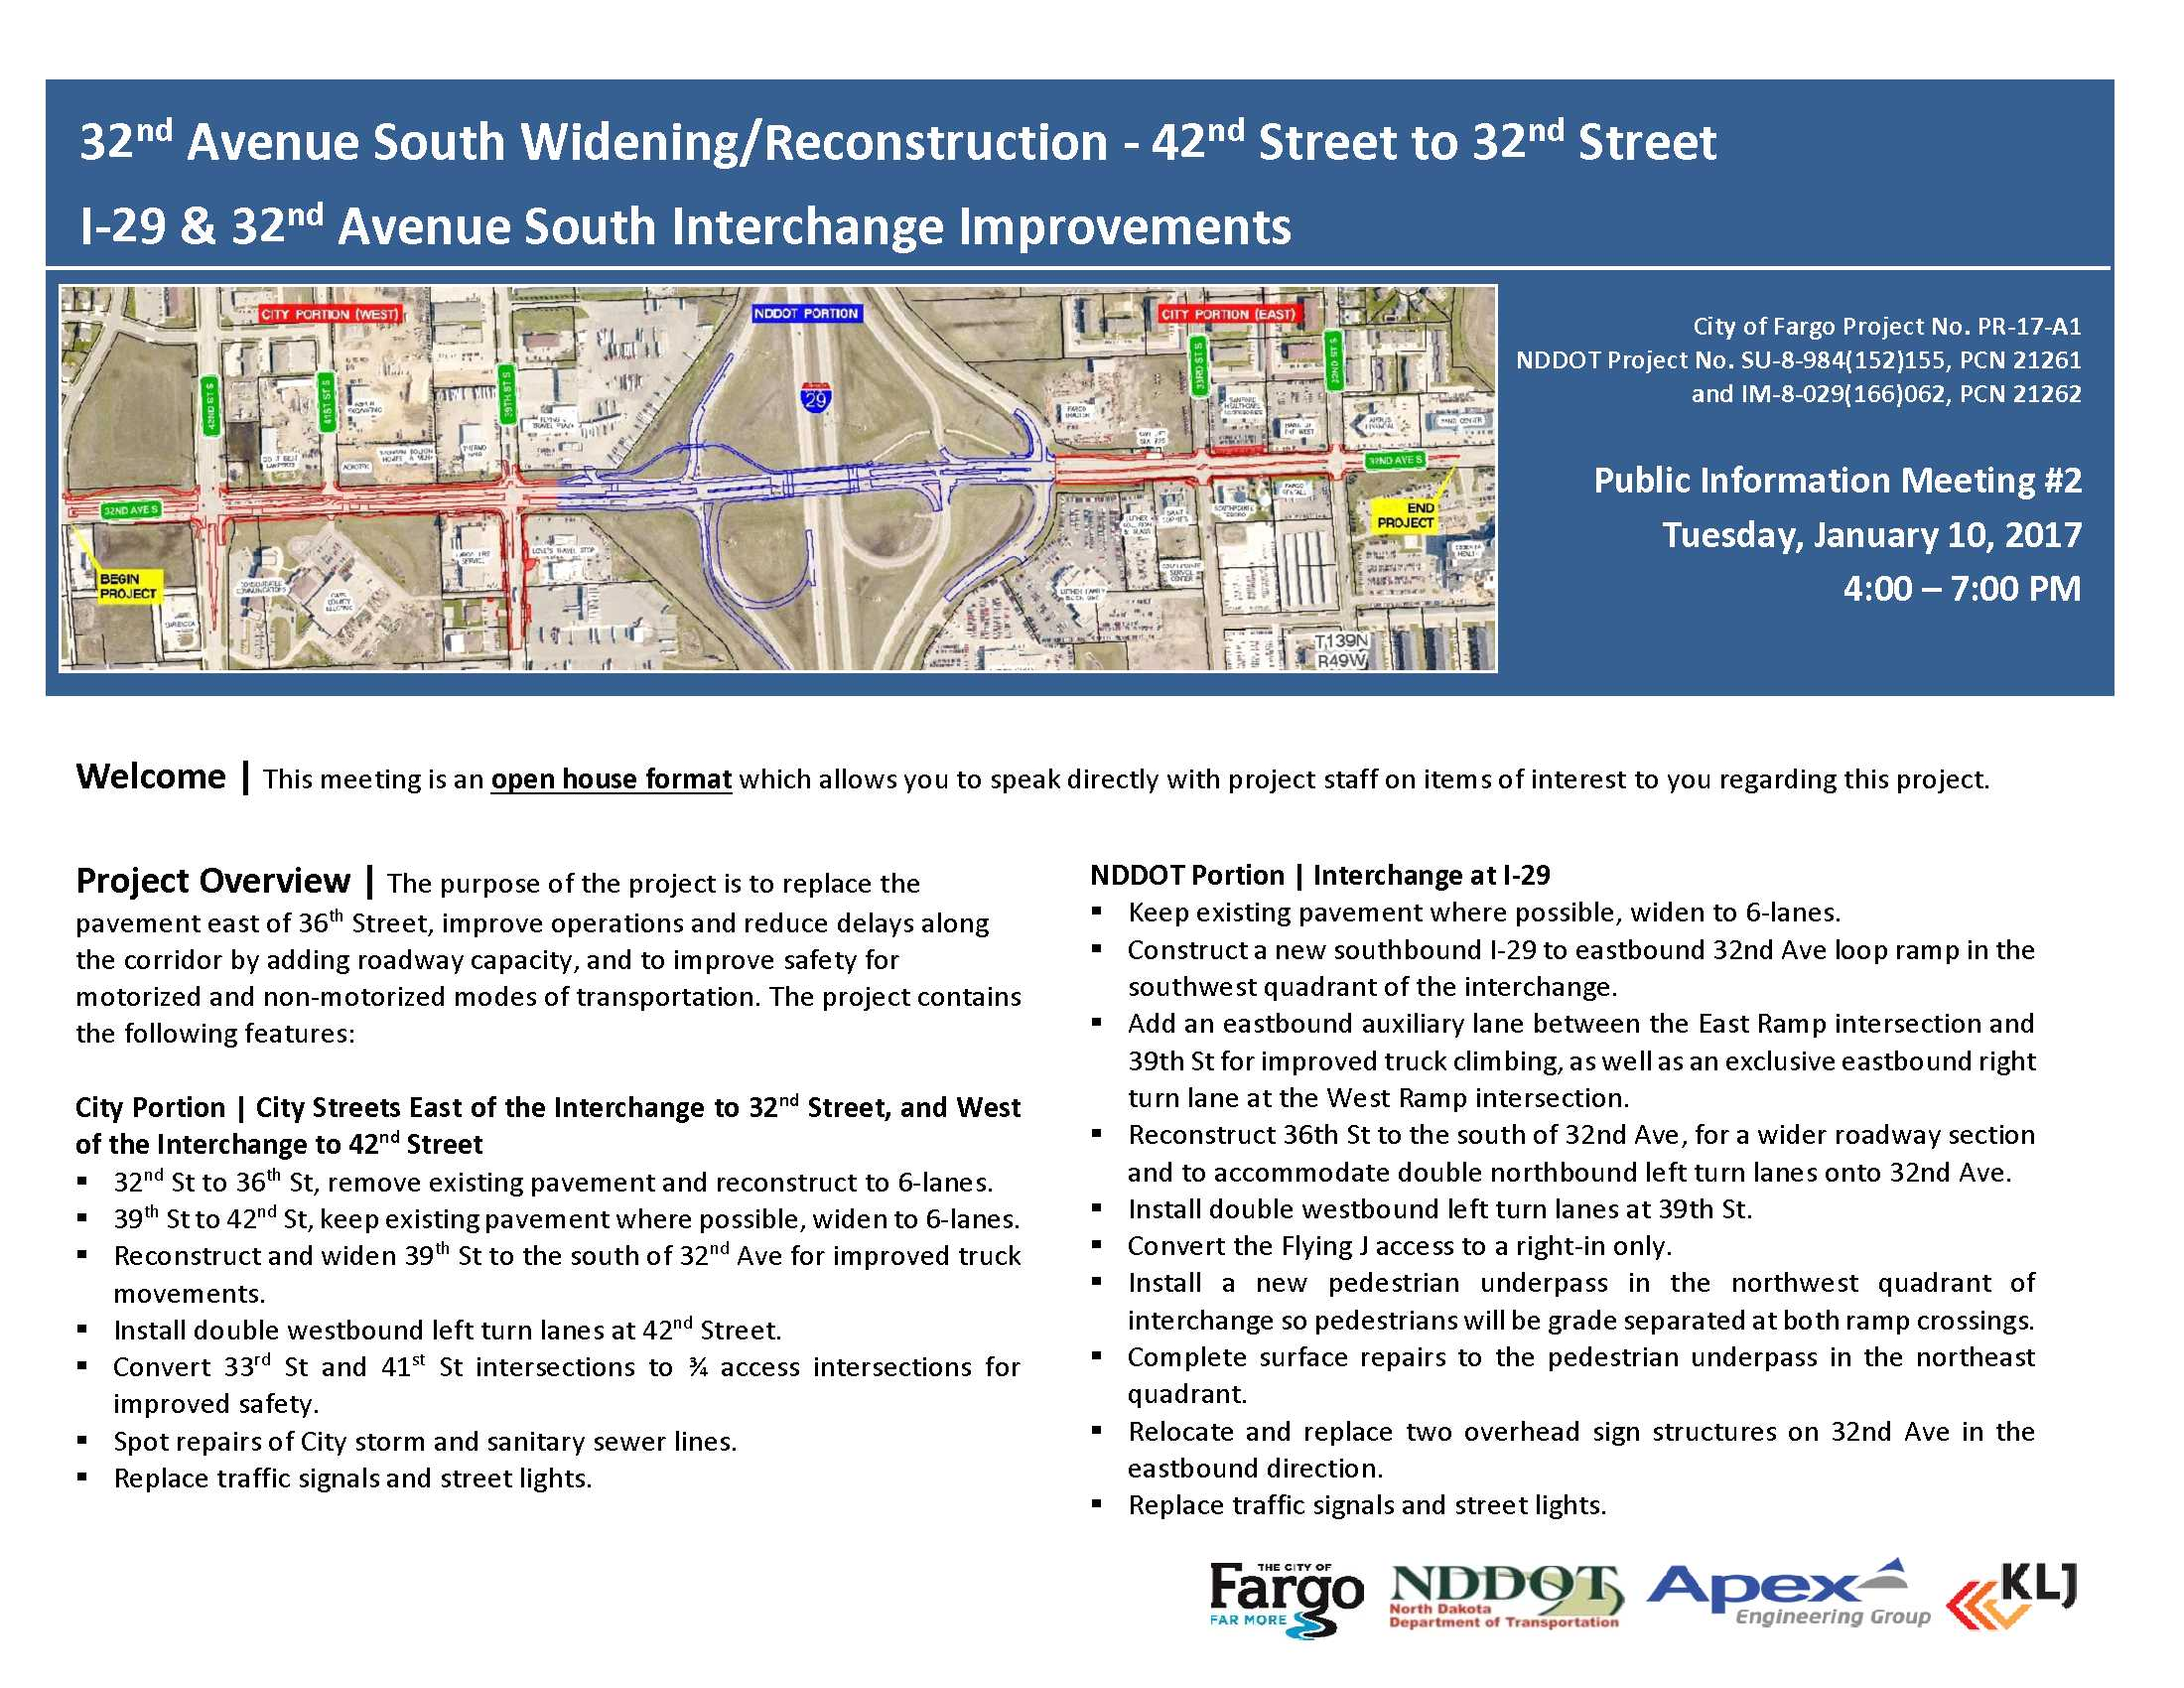 32nd Avenue South Reconstruction and I-29 overpass widening background and FAQ | Page 1